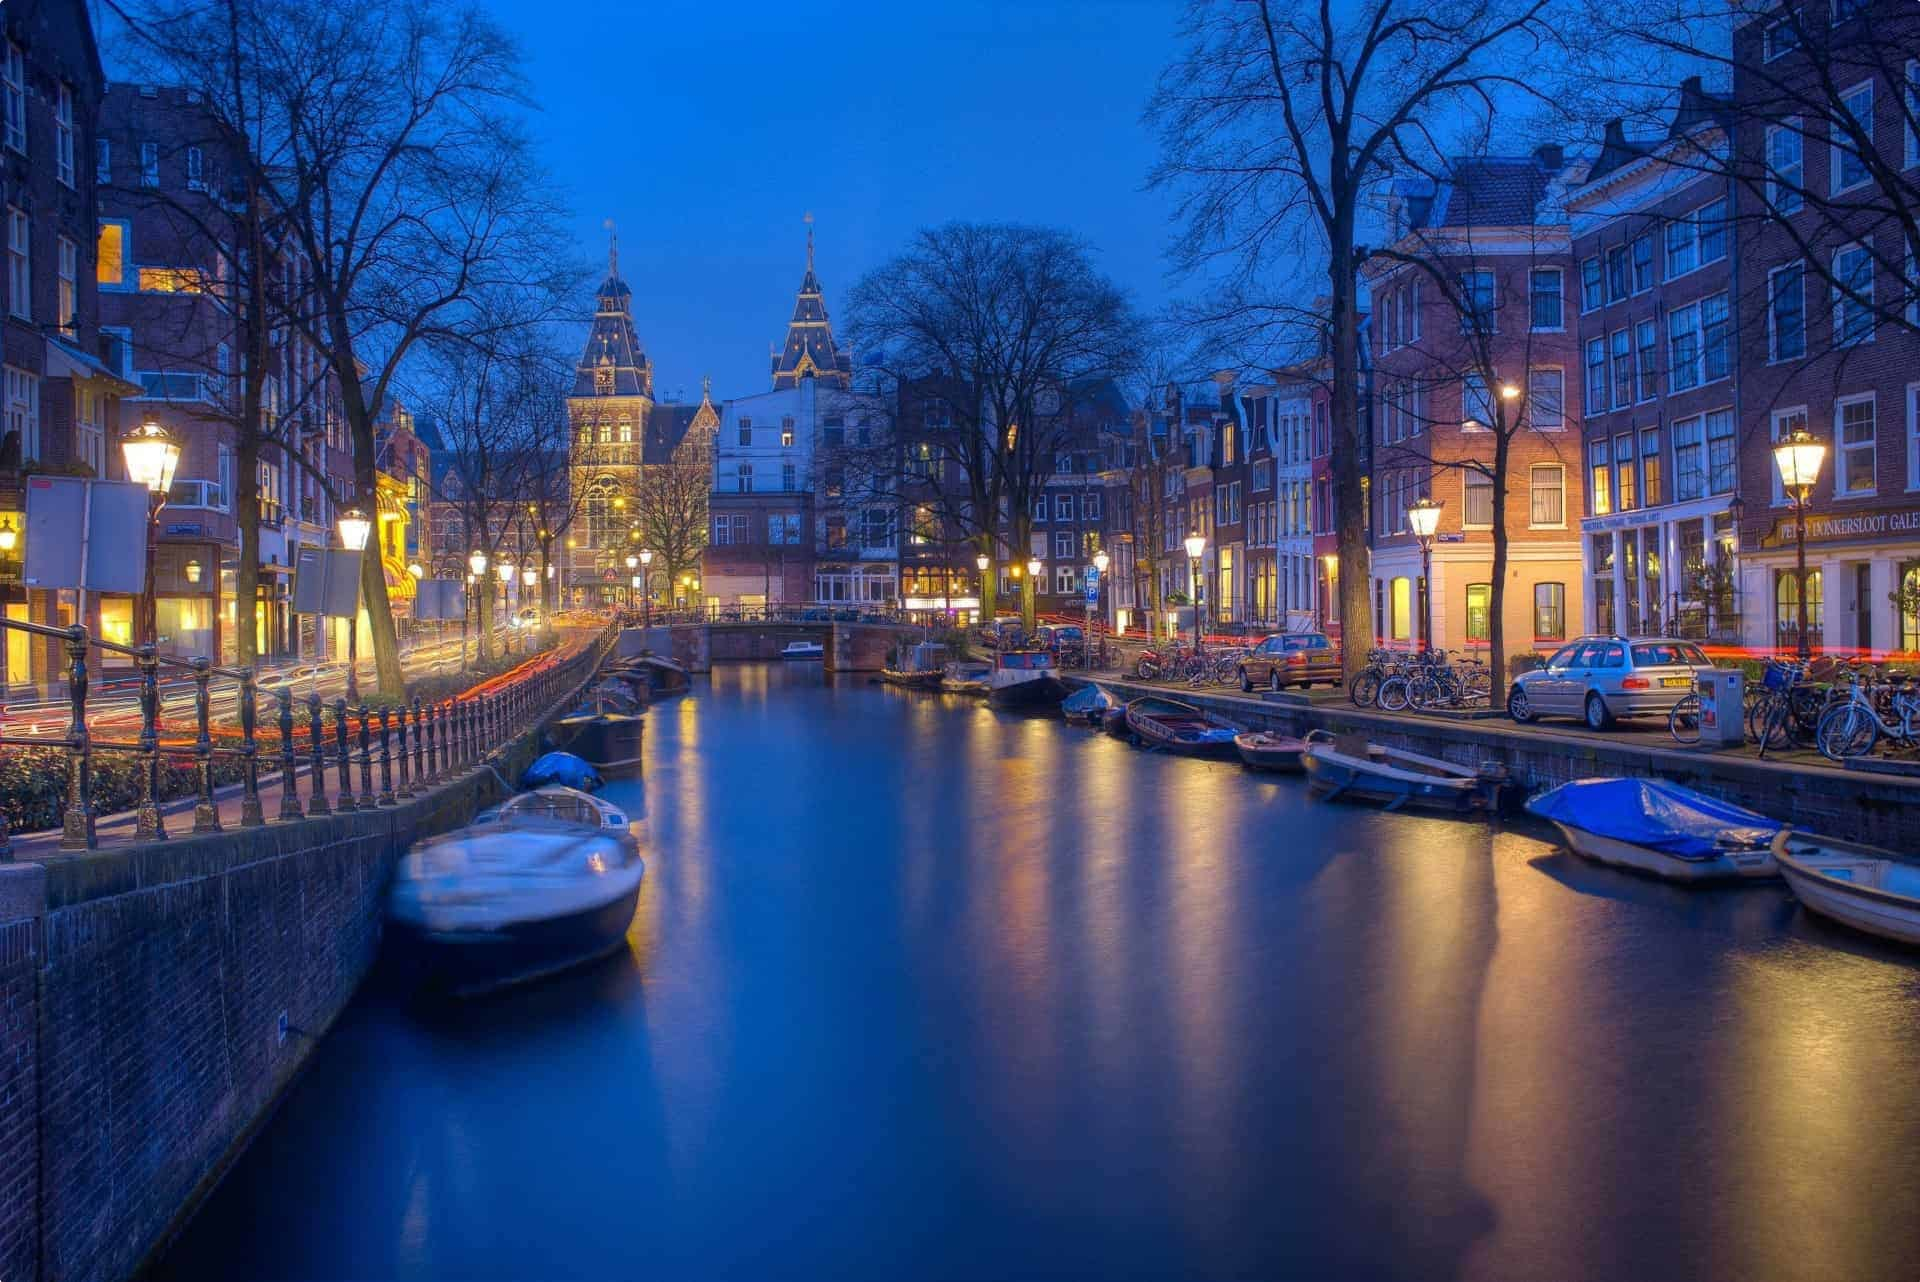 World Heritage Site - Amsterdam's Canal District